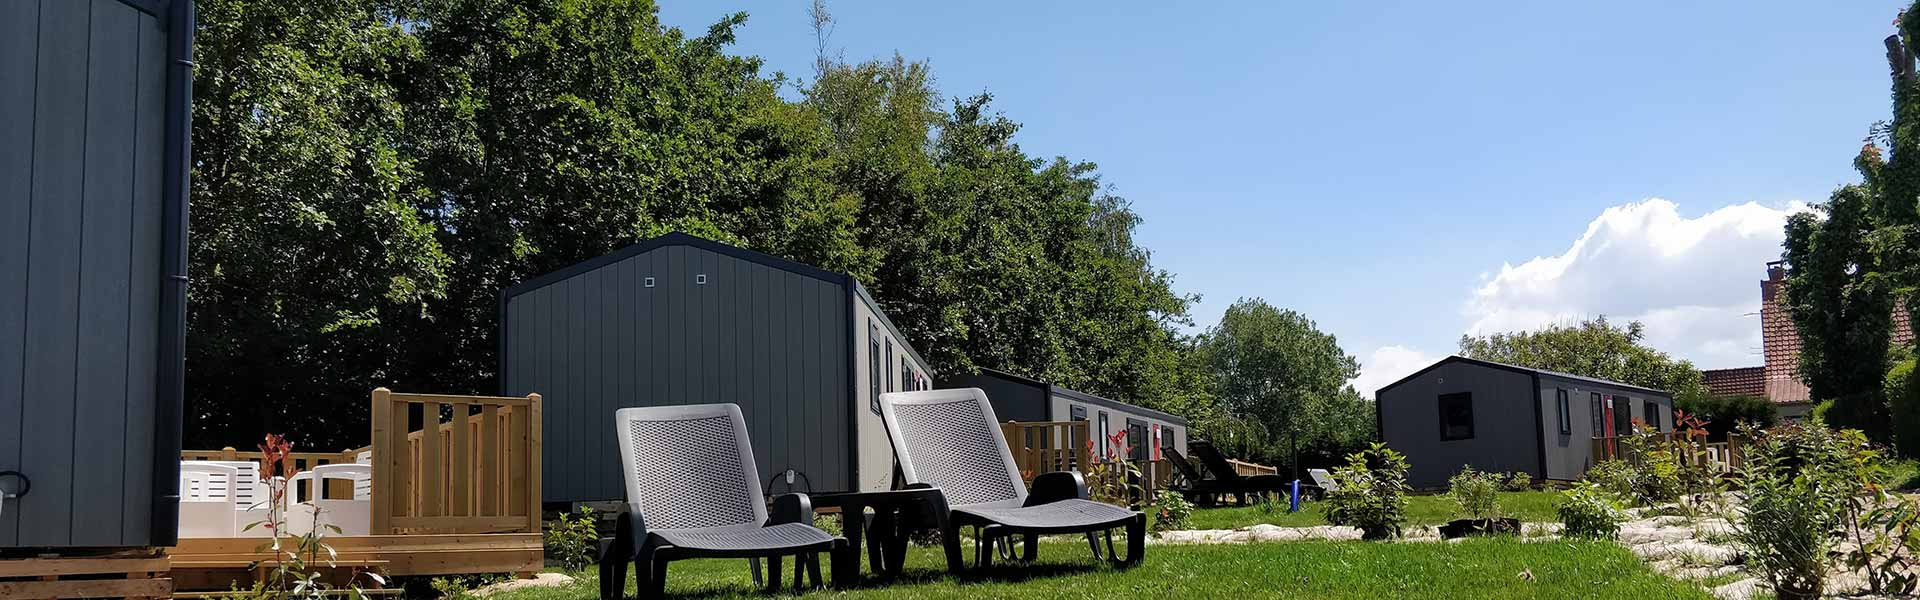 mobil home camping wissant plage